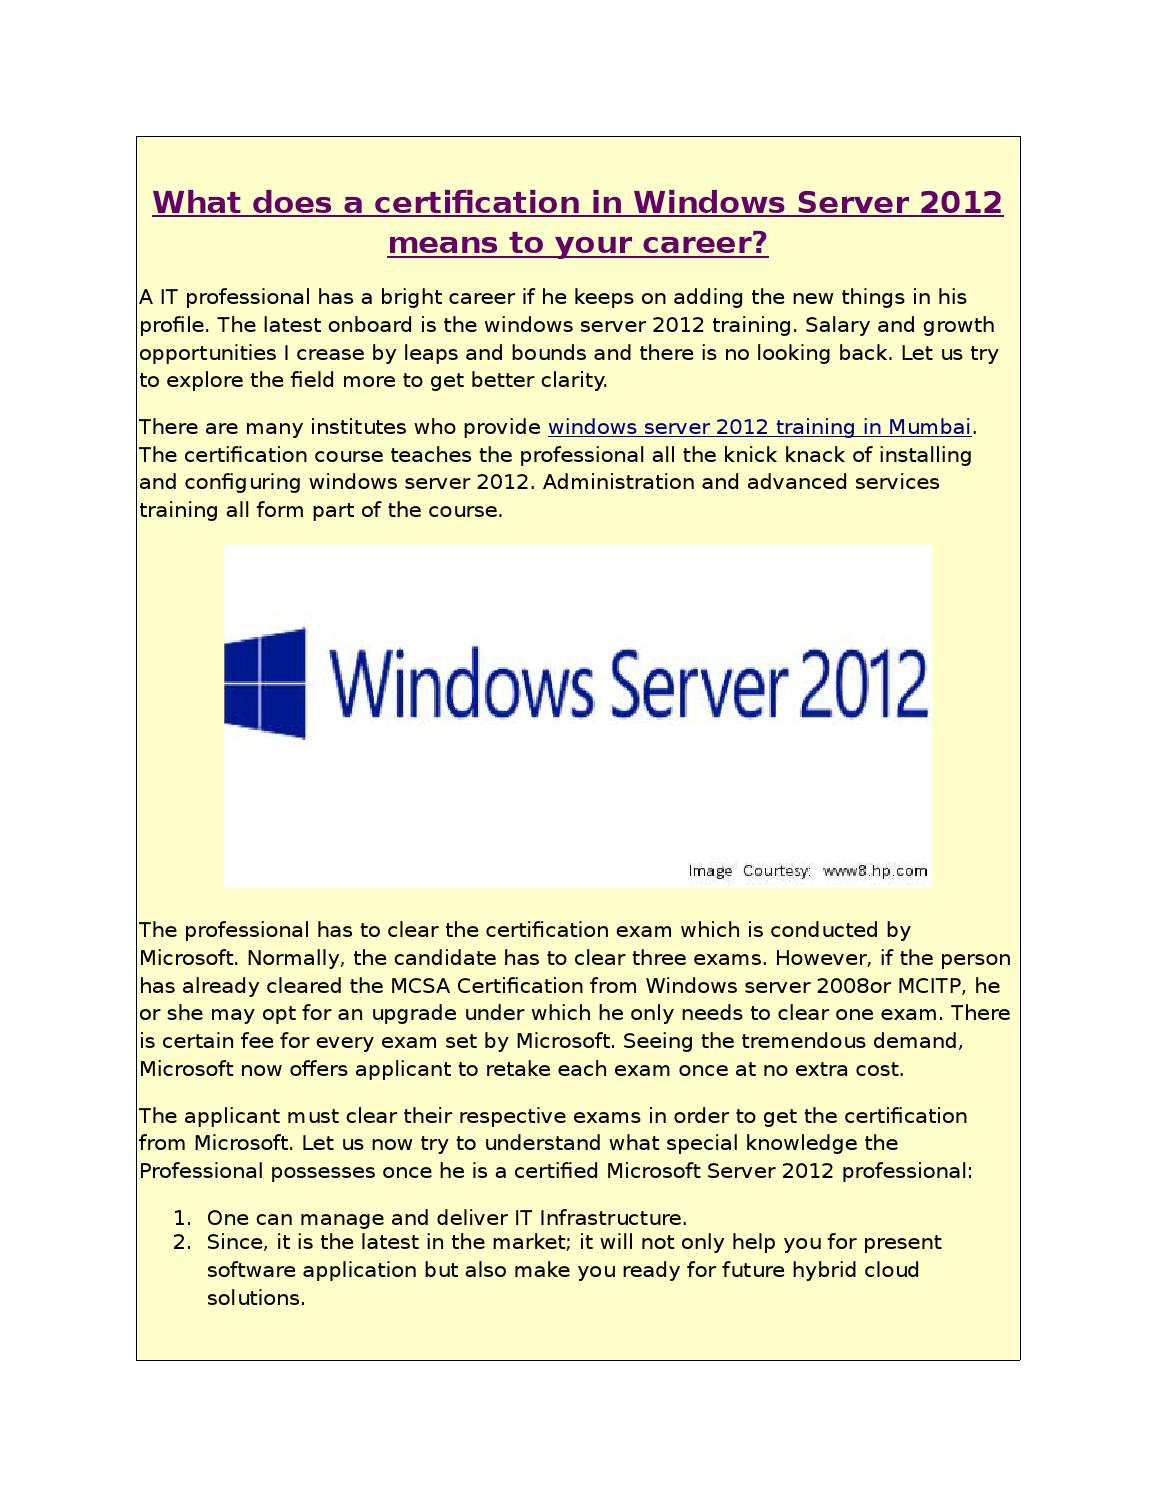 What Does A Certification In Windows Server 2012 Means To Your